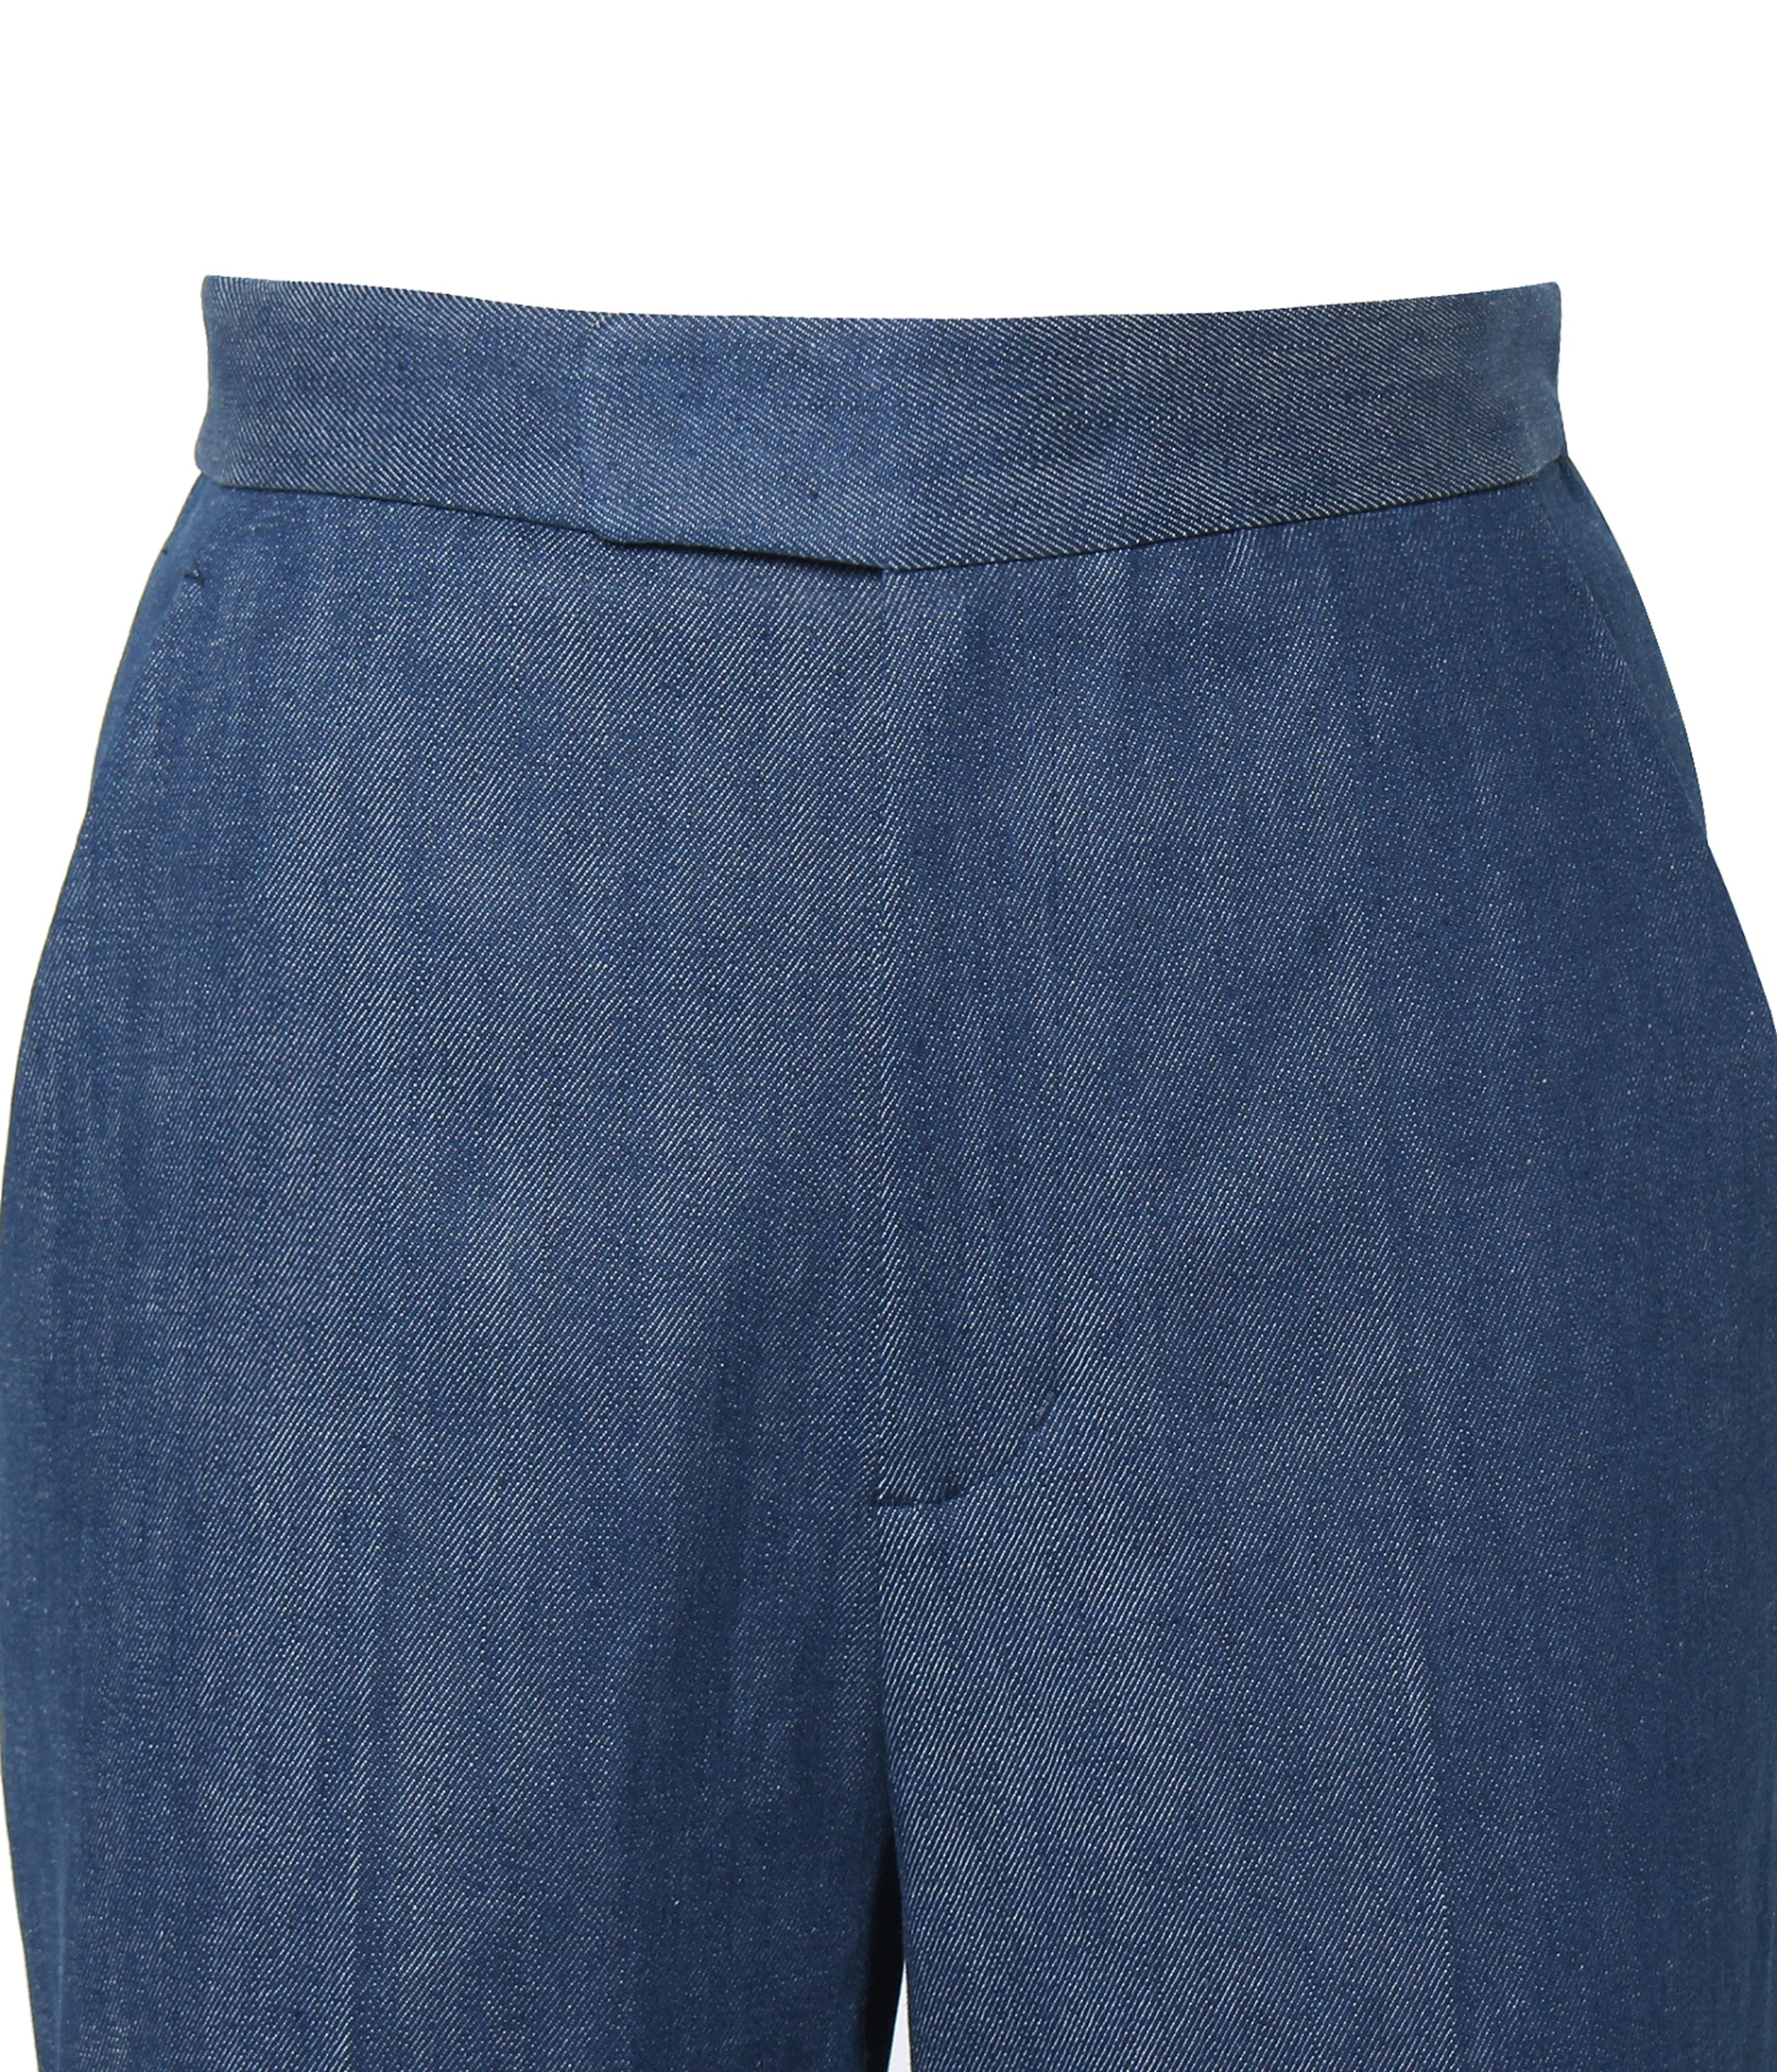 CATALINA TROUSERS 詳細画像 BLUE 4